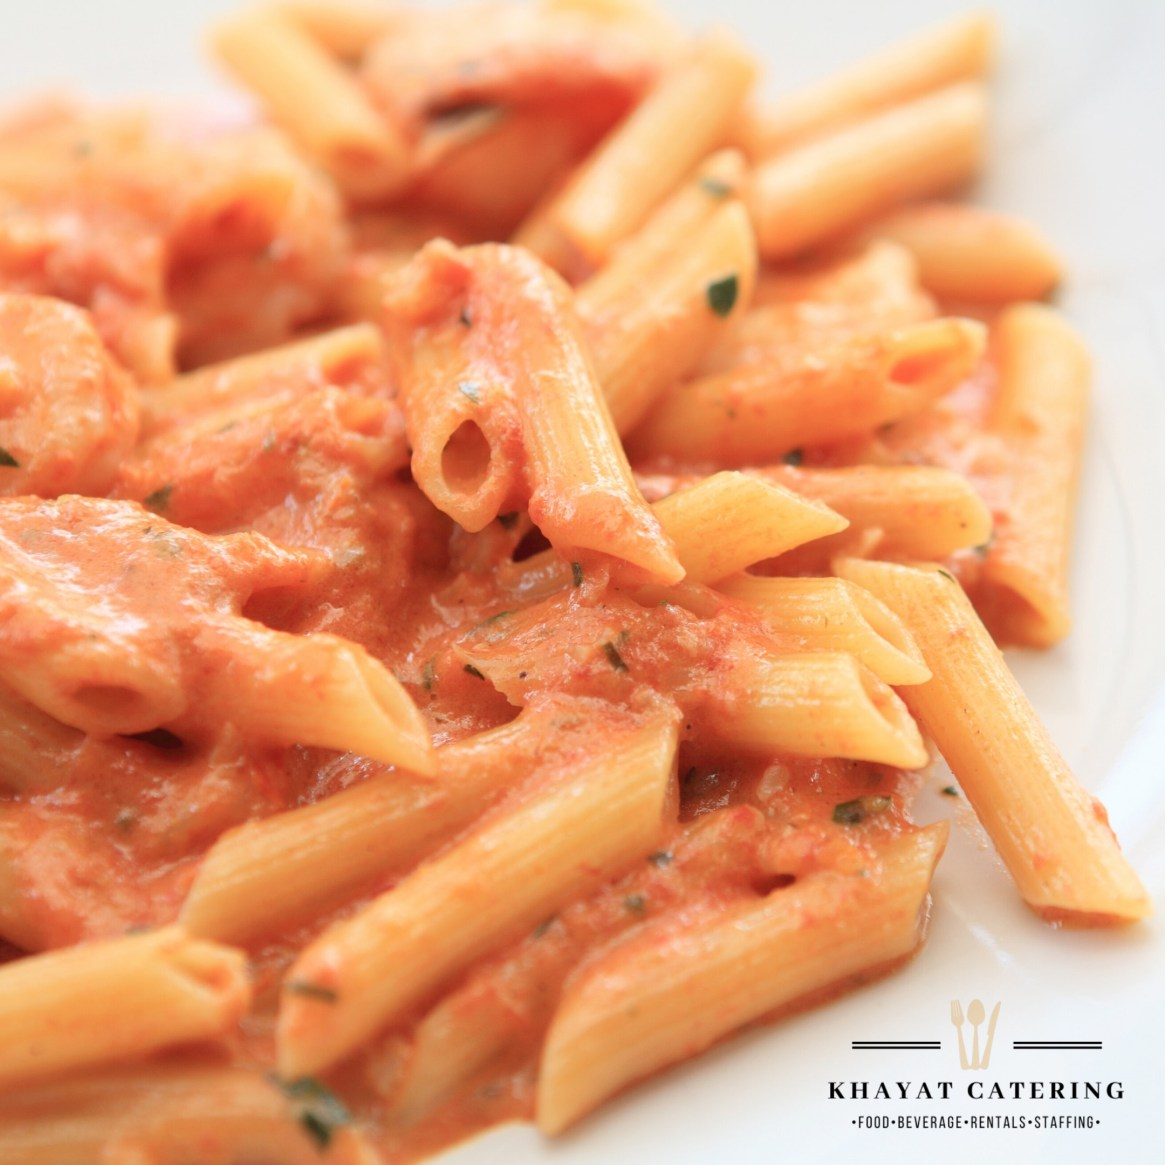 Khayat Catering penne